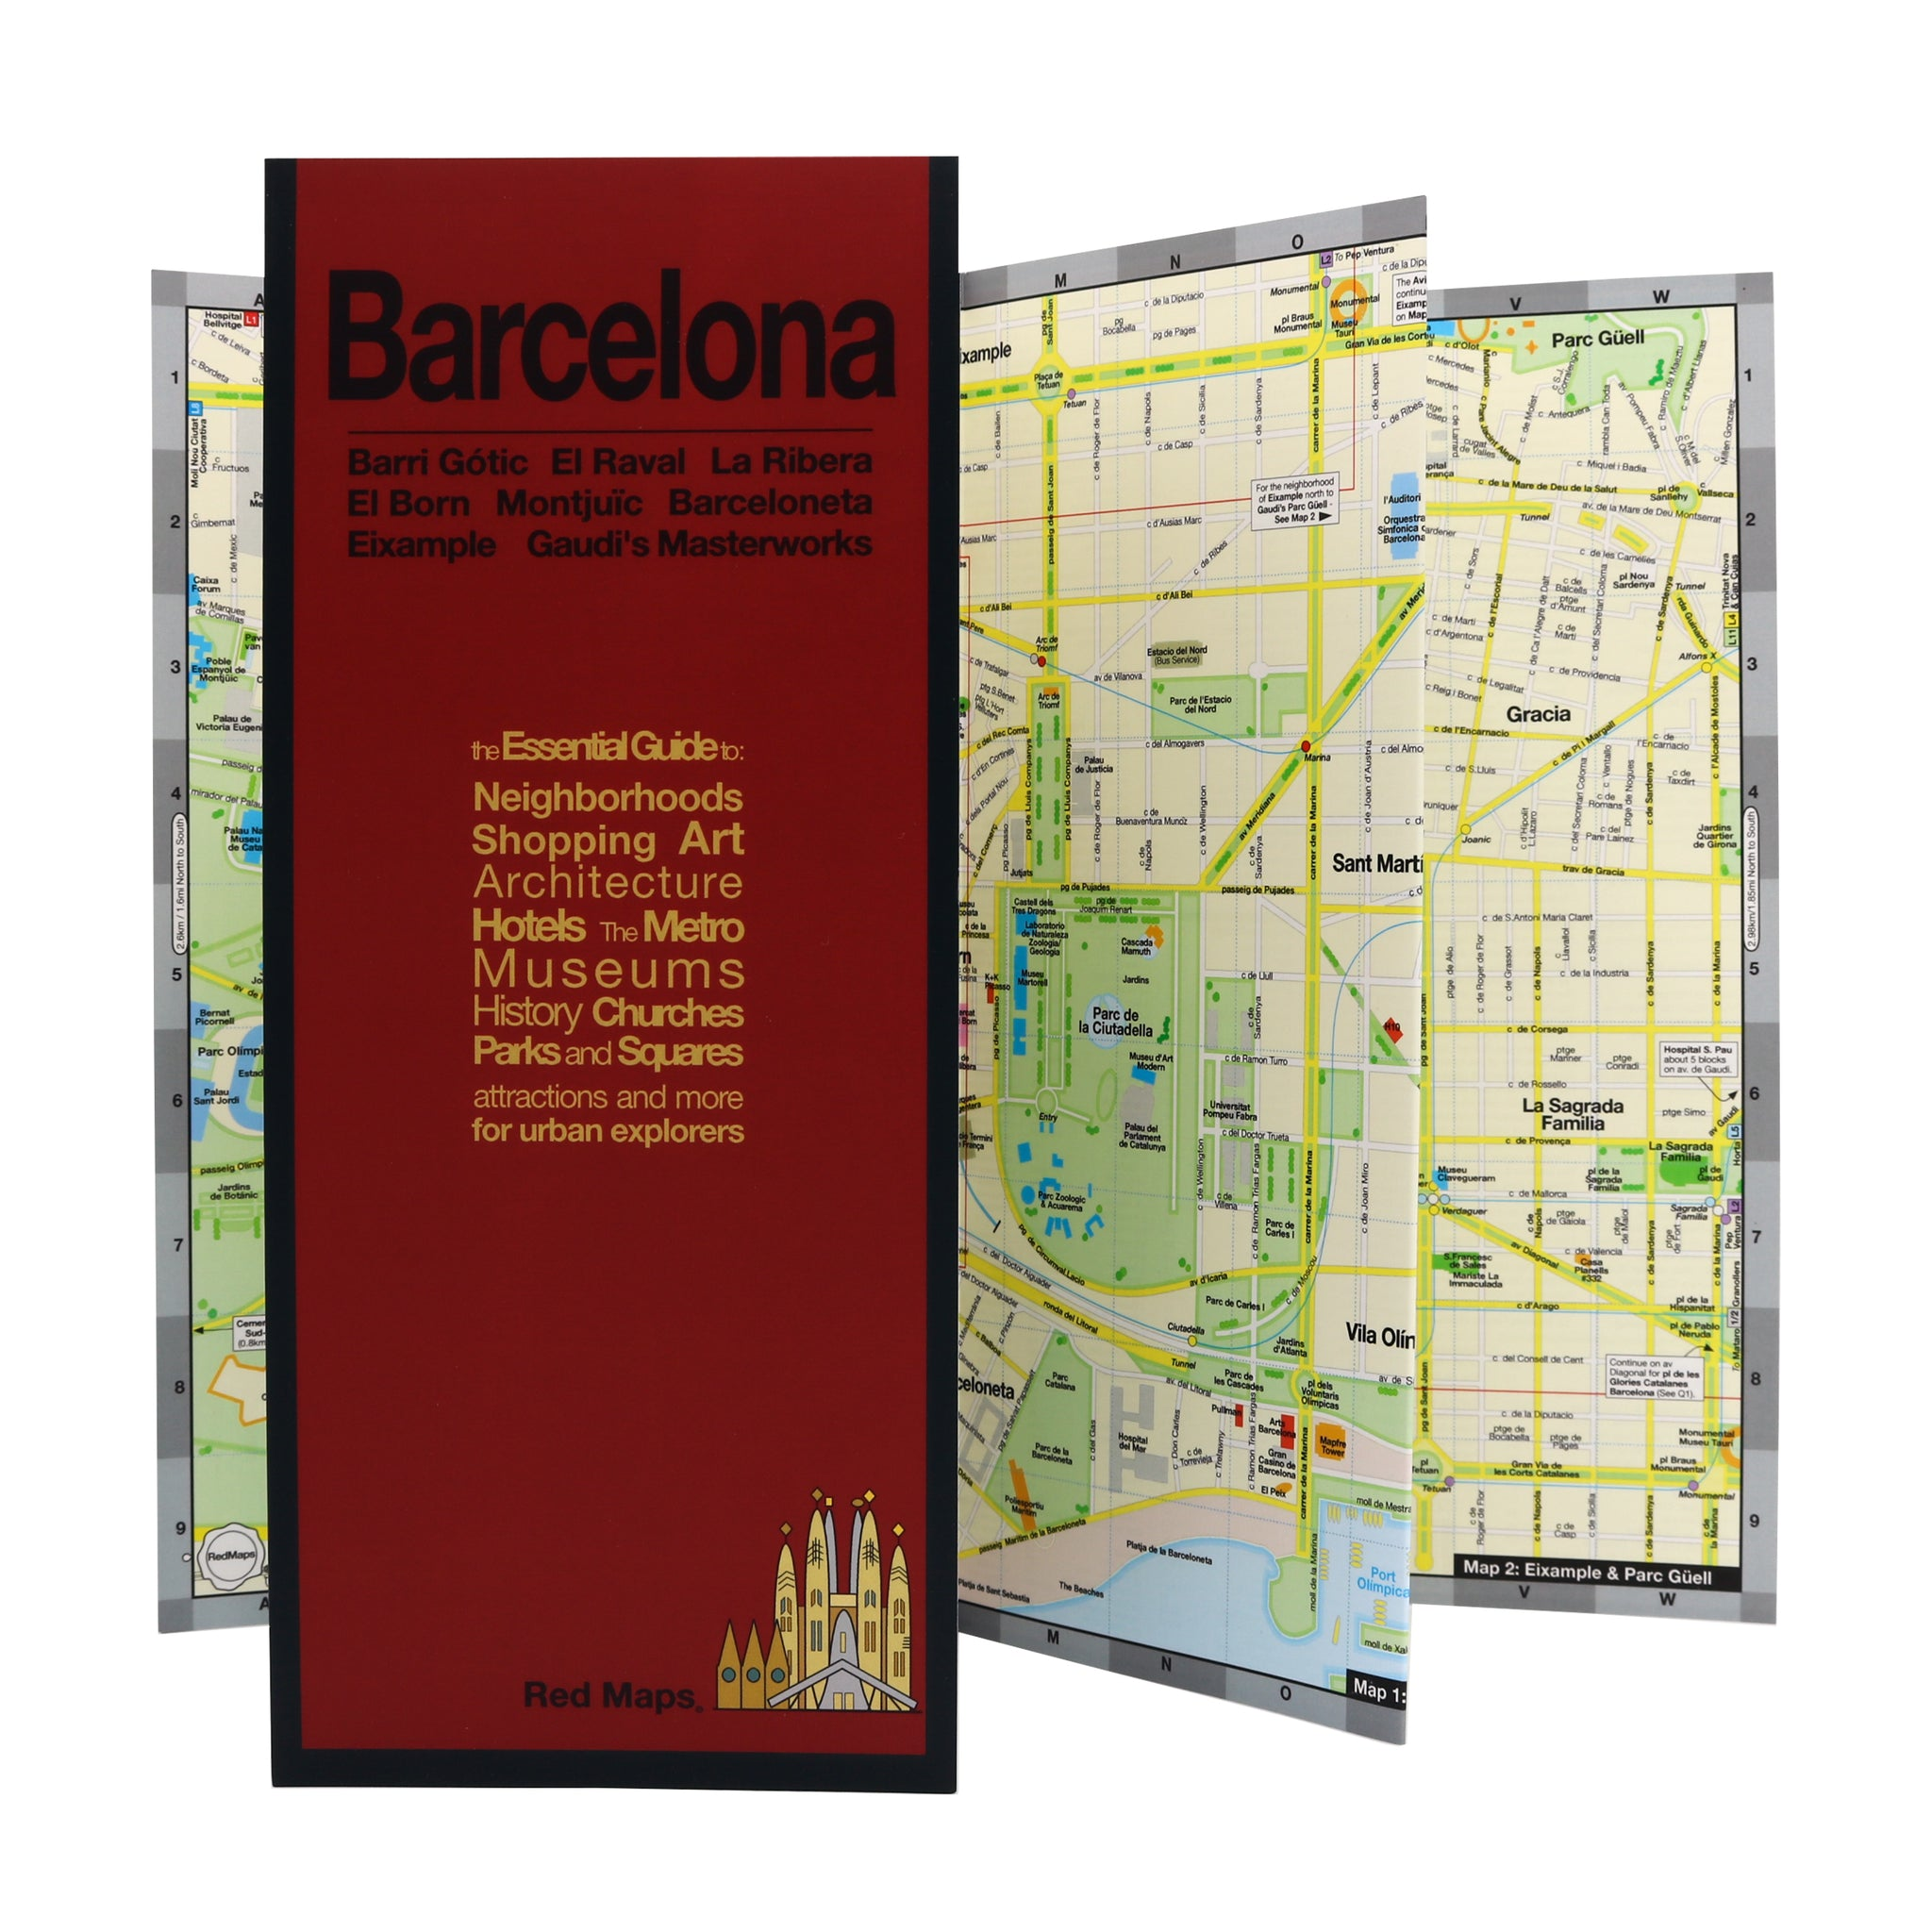 Central Barcelona travel map with points of interest.